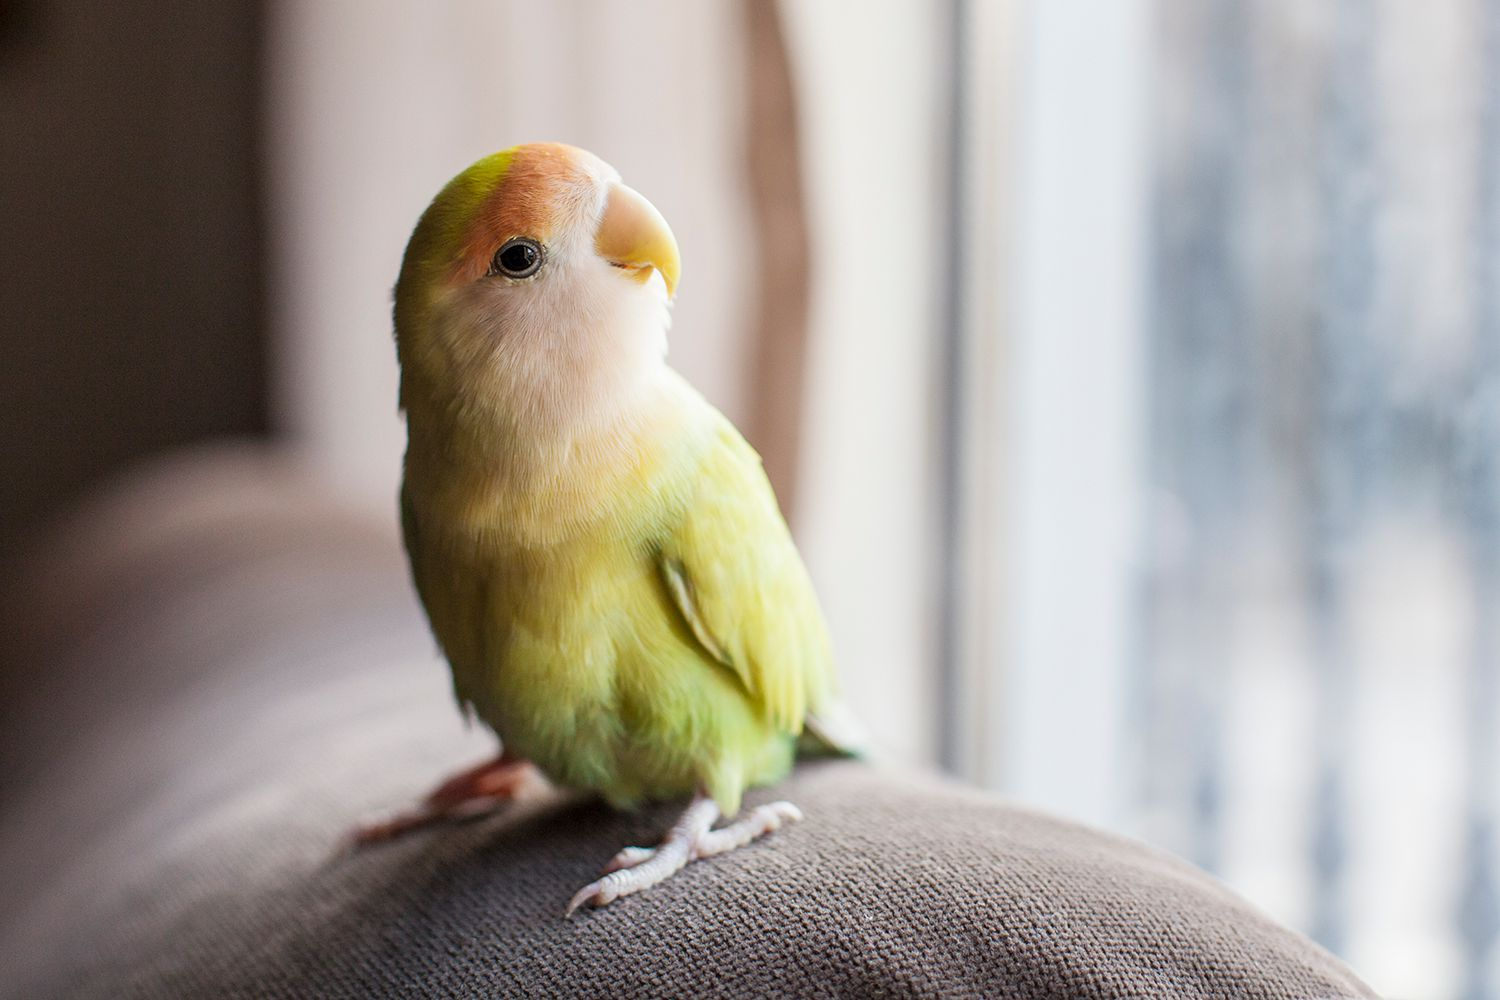 Parrot perched on furniture